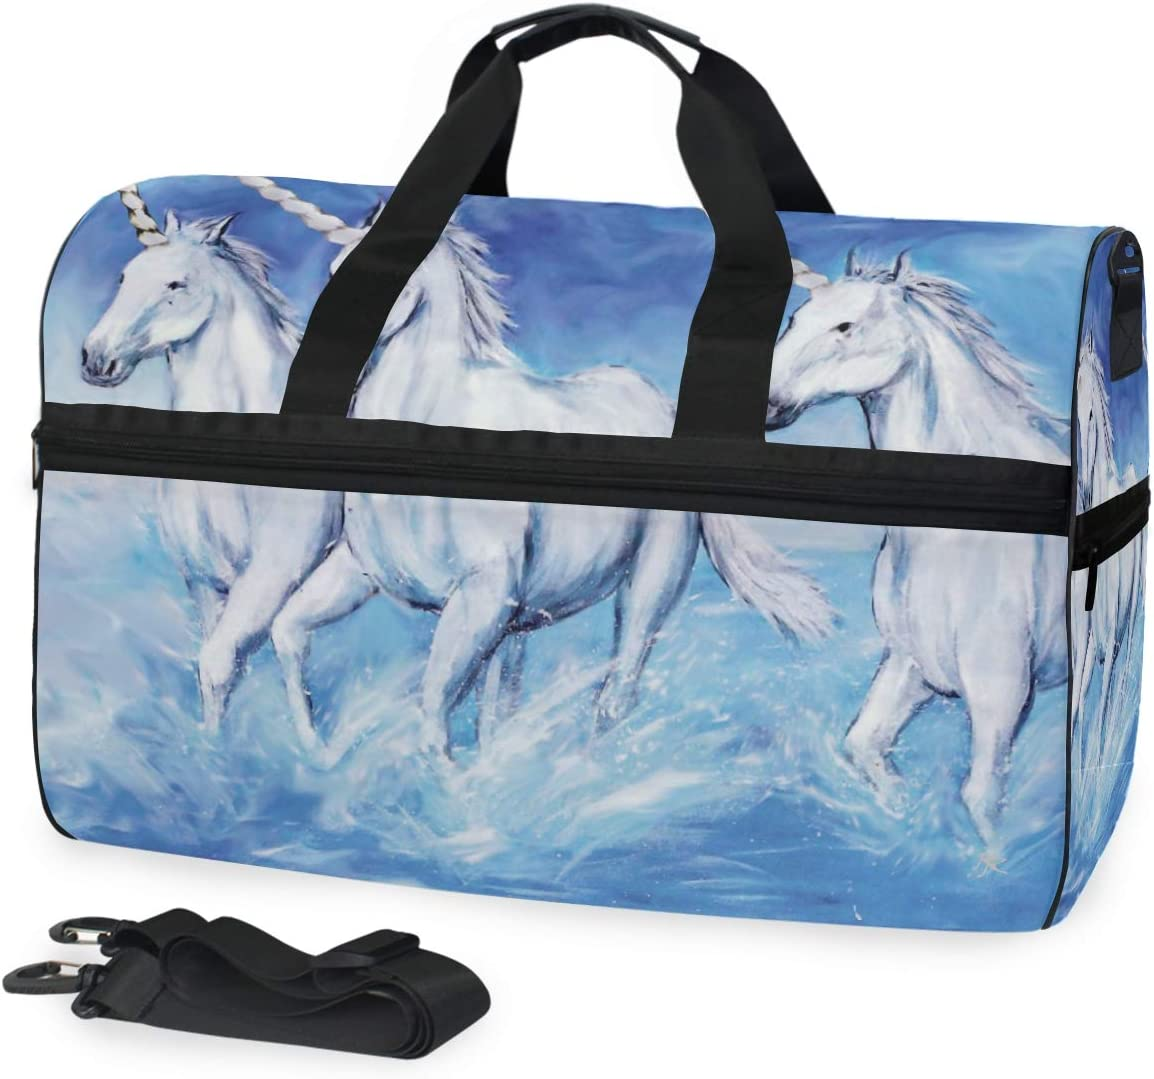 FANTAZIO Unicorn Horse Sports Bag Packable Travel Duffle Bag Lightweight Water Resistant Tear Resistant